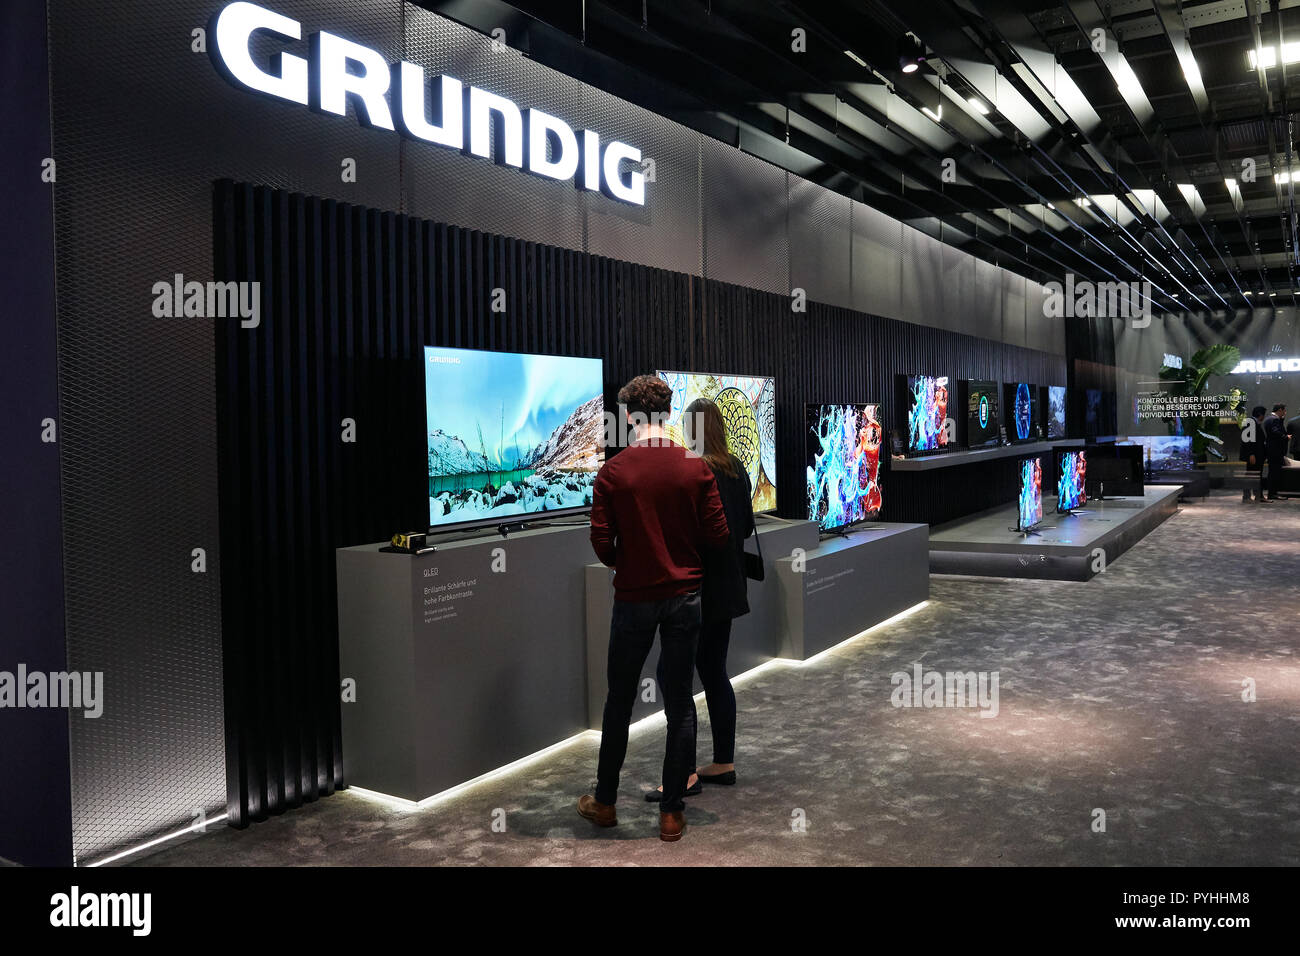 Berlin, Germany - GRUNDIG's stand at IFA 2018 with innovations in flat-screen televisions. - Stock Image